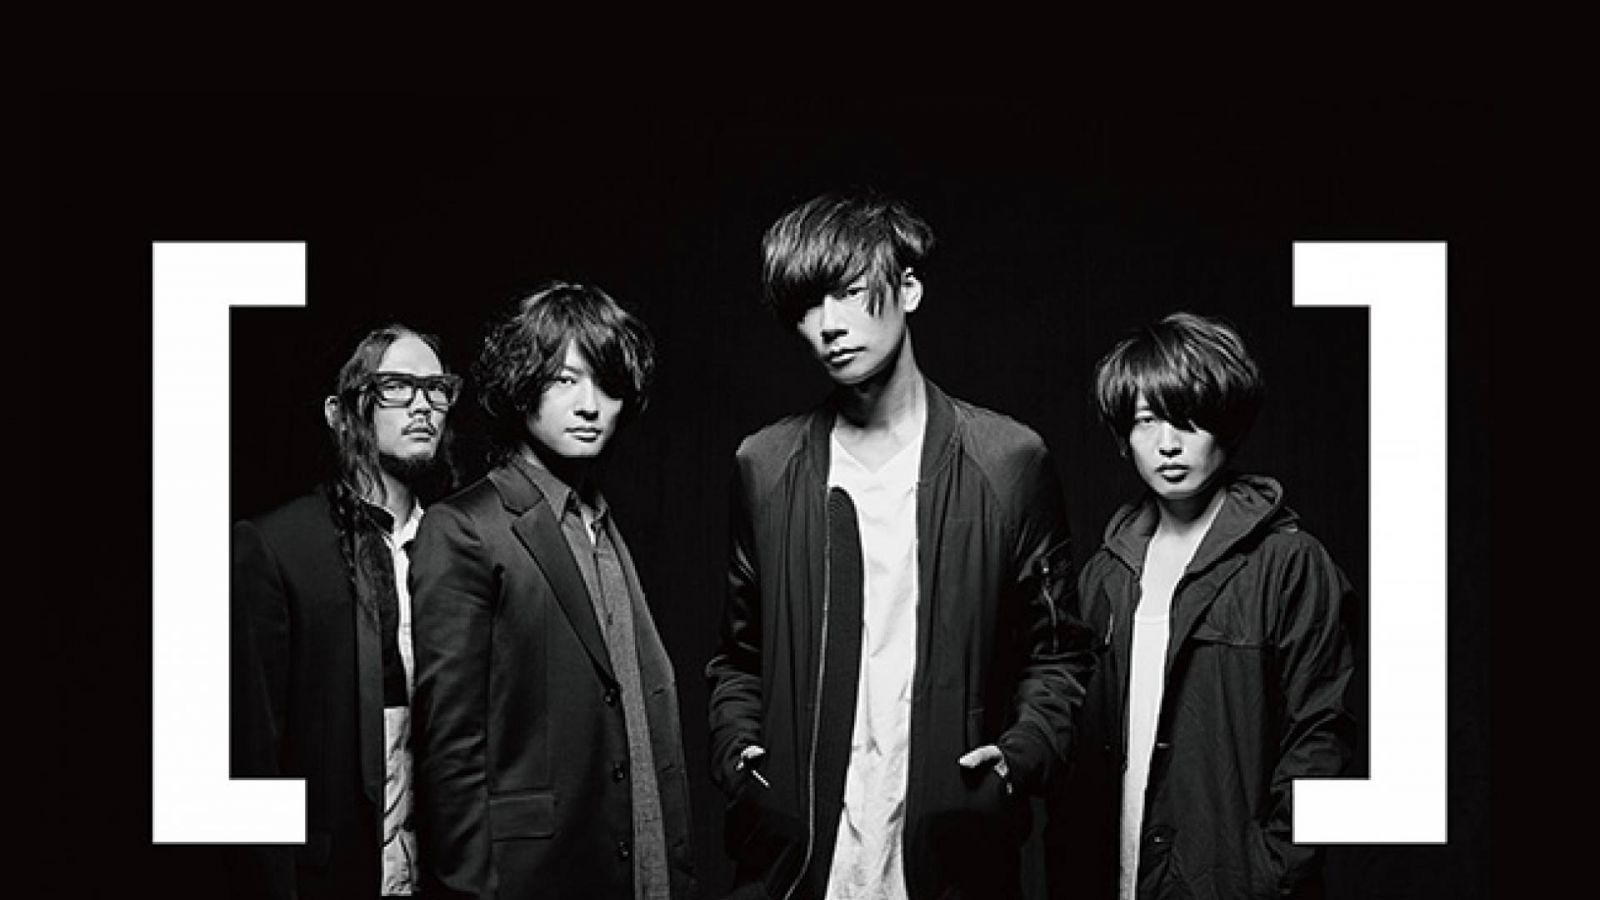 Nuevo álbum de [Alexandros] © [Alexandros]. All Rights Reserved